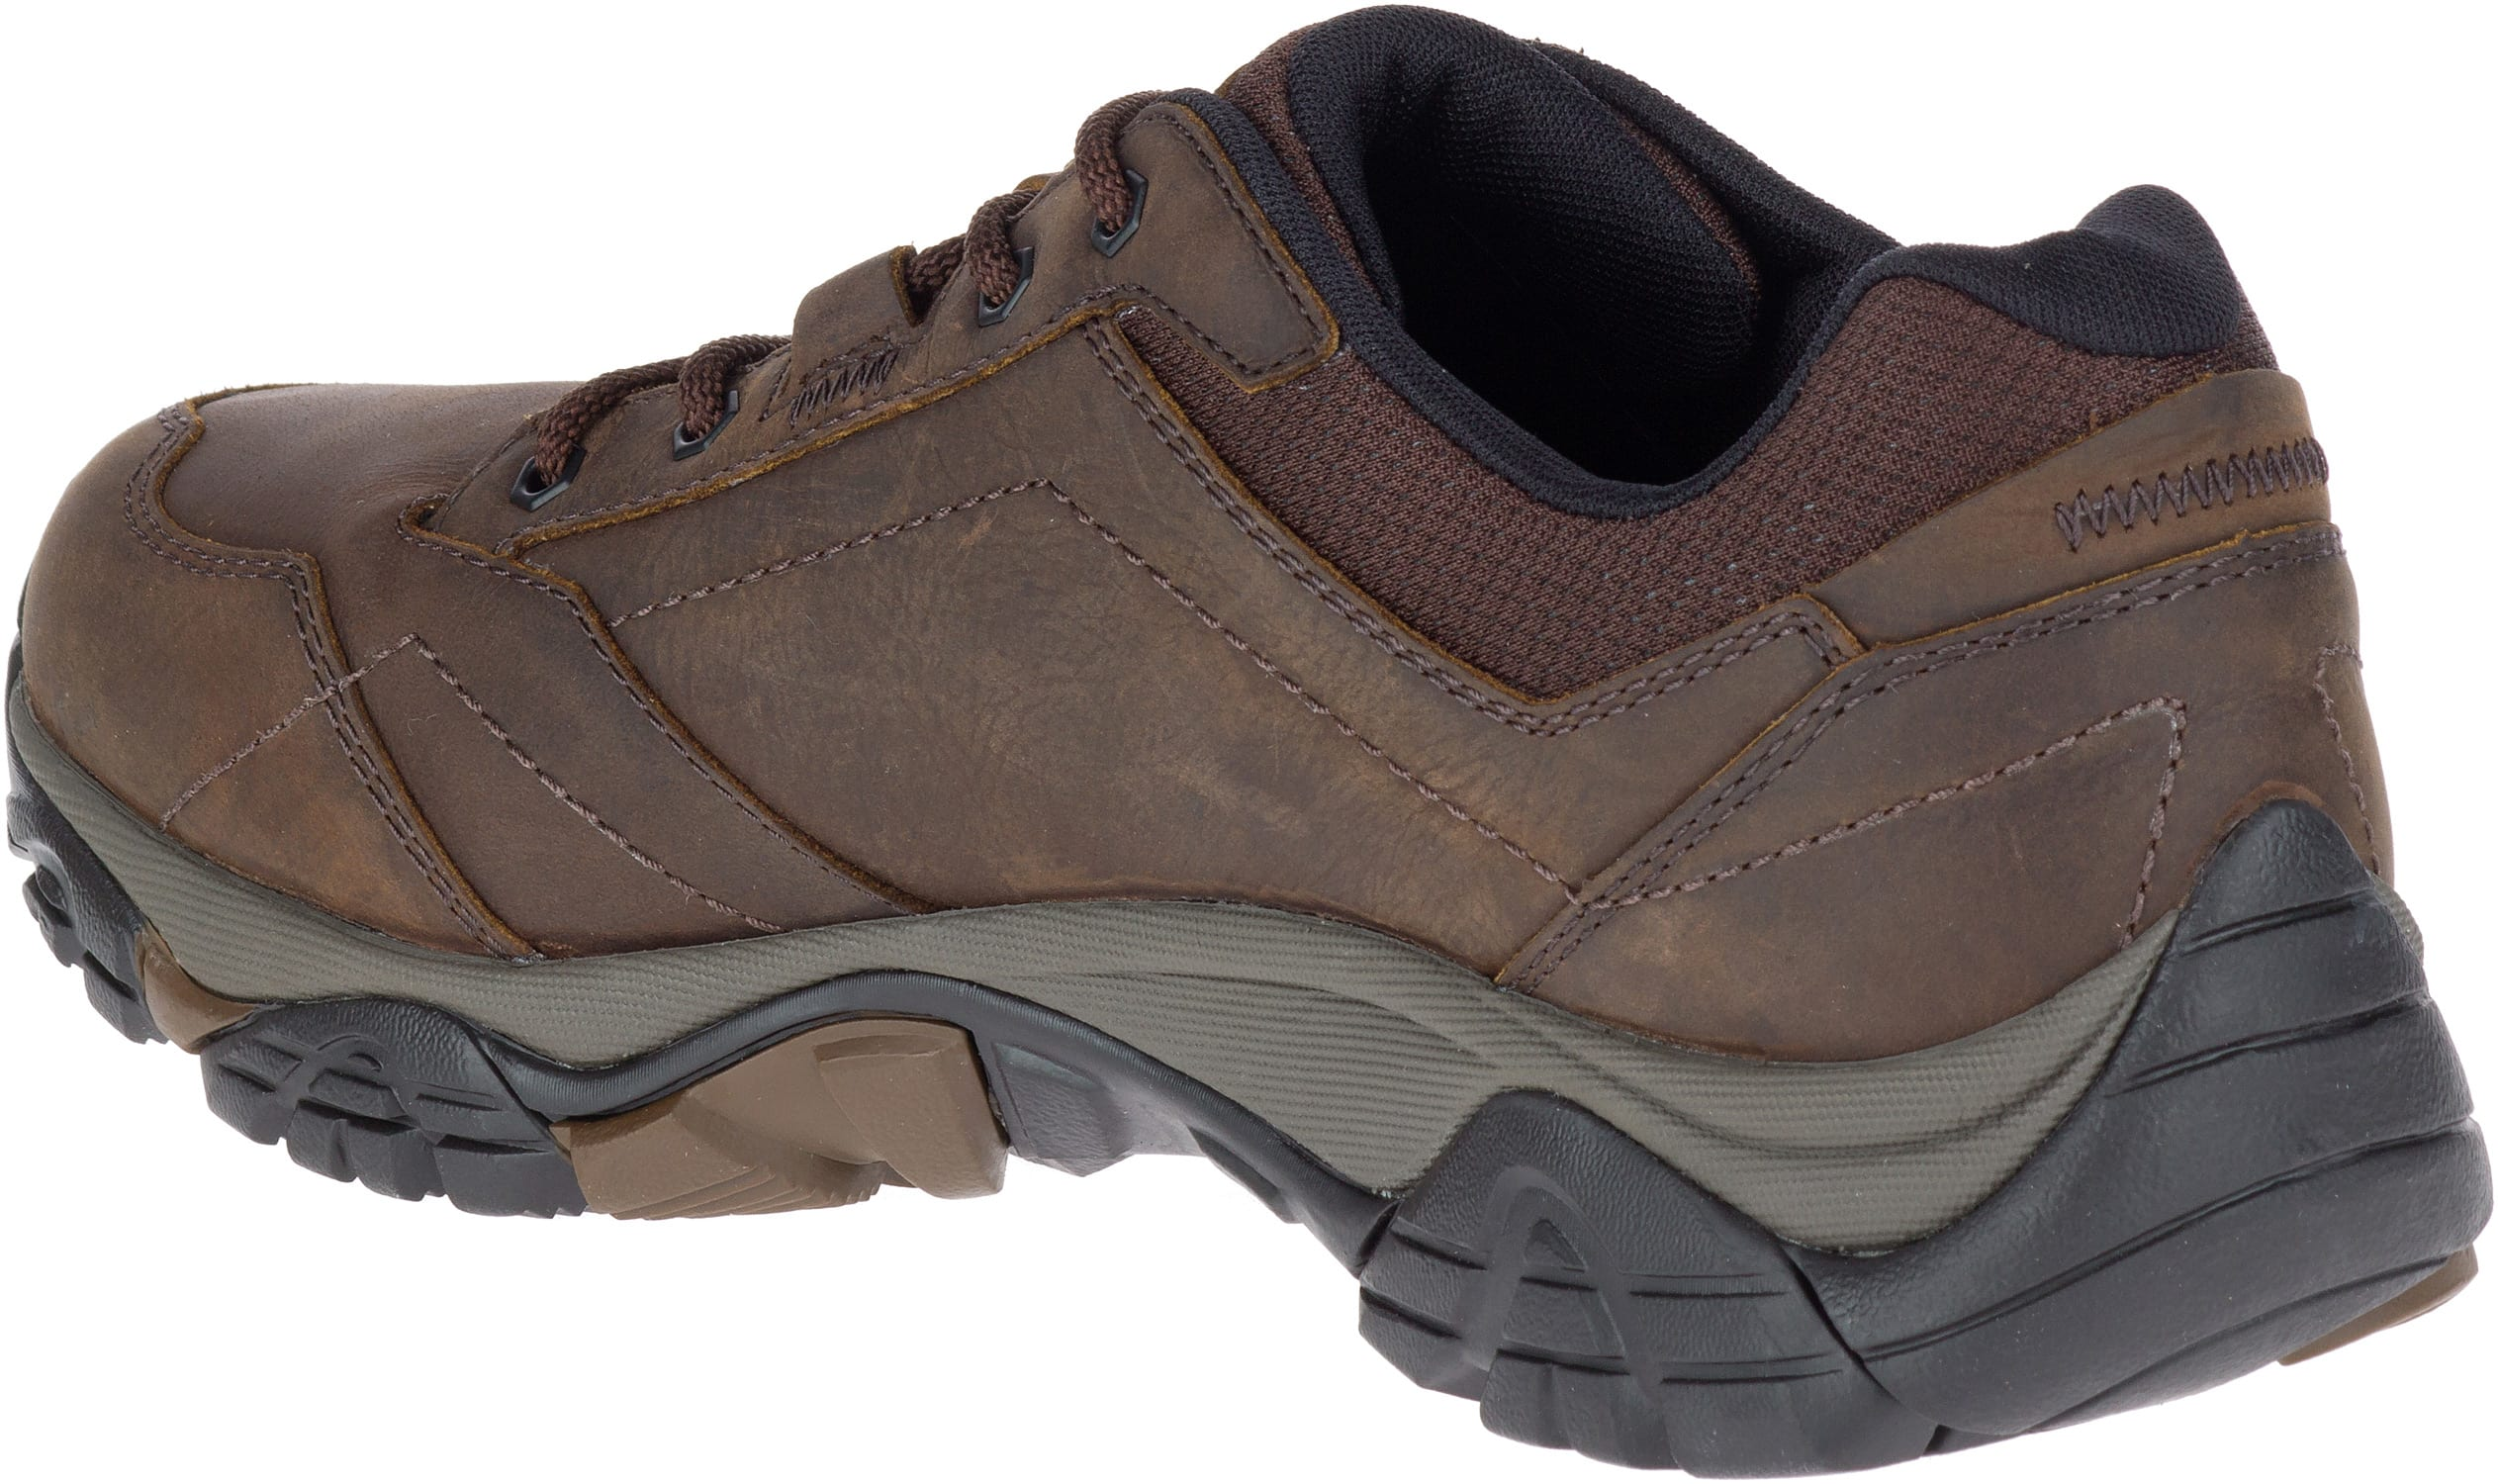 Merrell Moab Adventure Lace Waterproof Hiking Shoes 2020